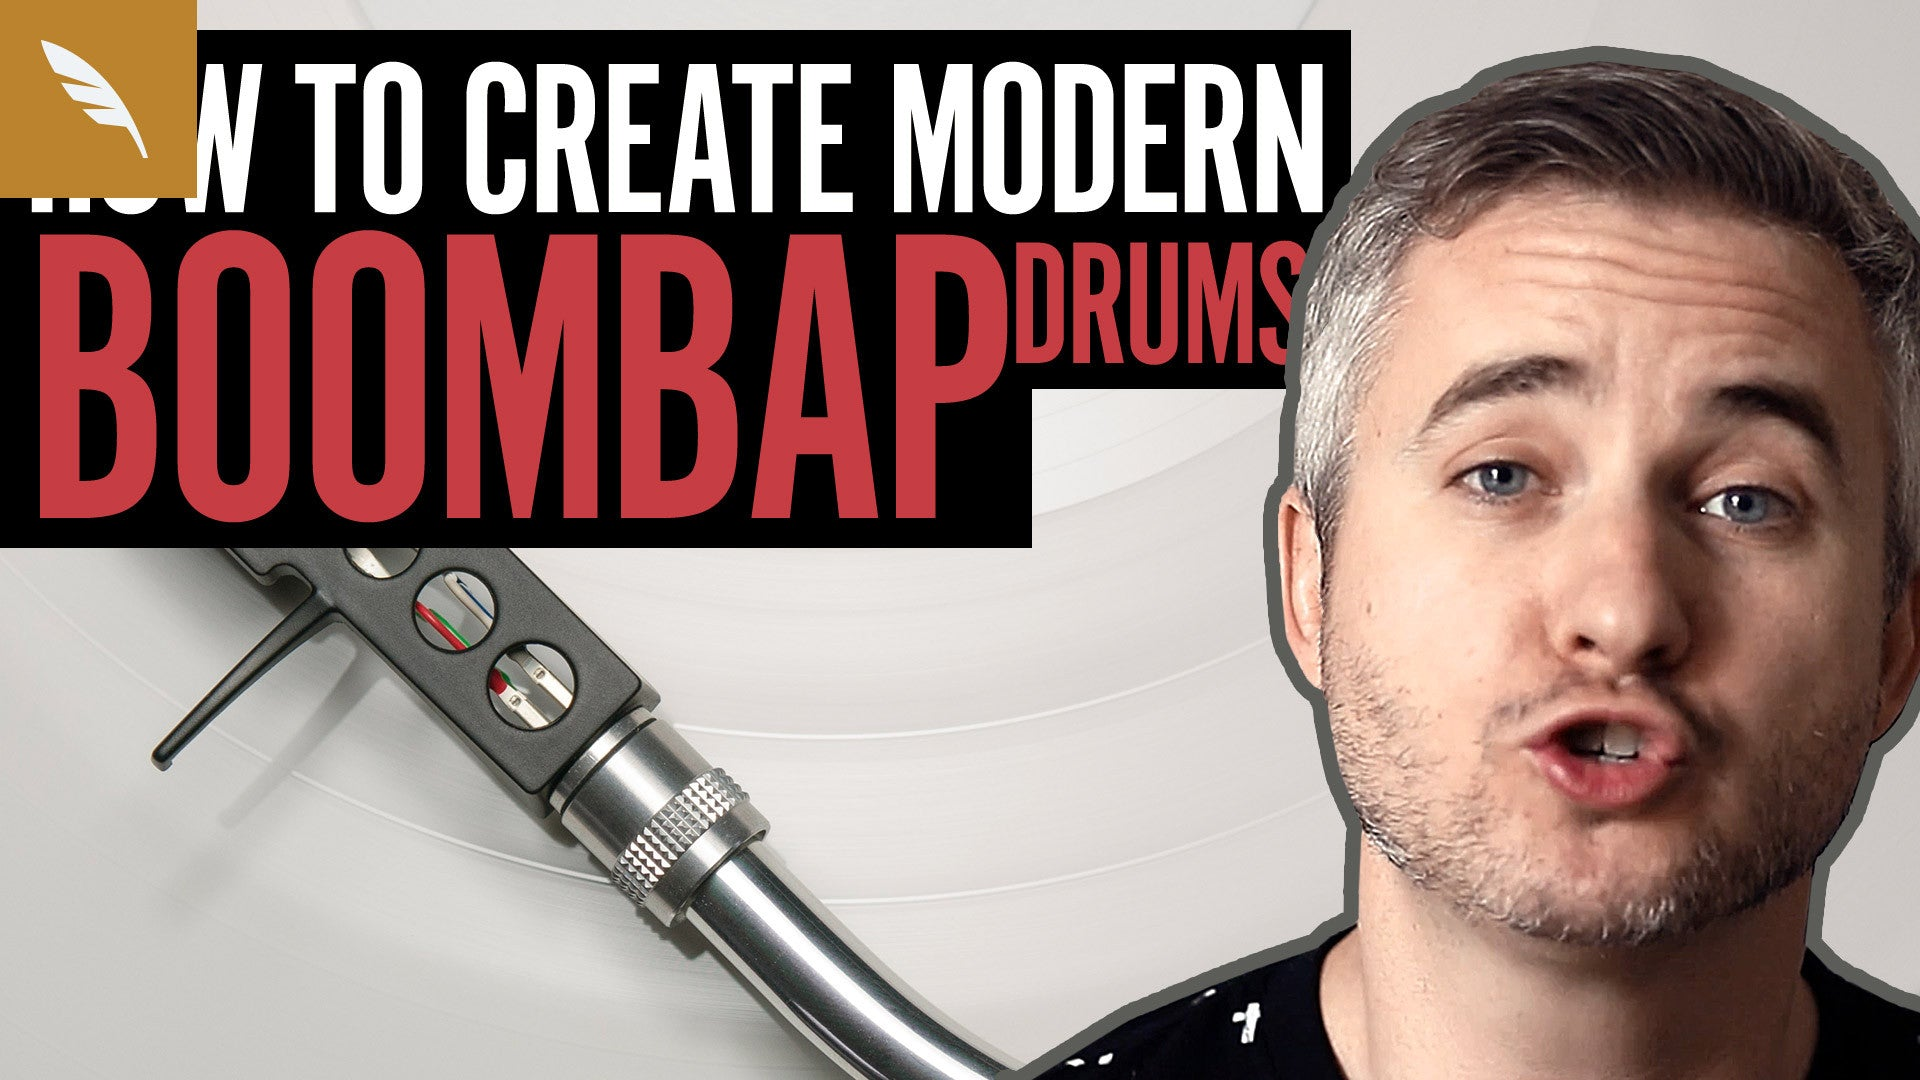 How To Create Modern Boom Bap Drums